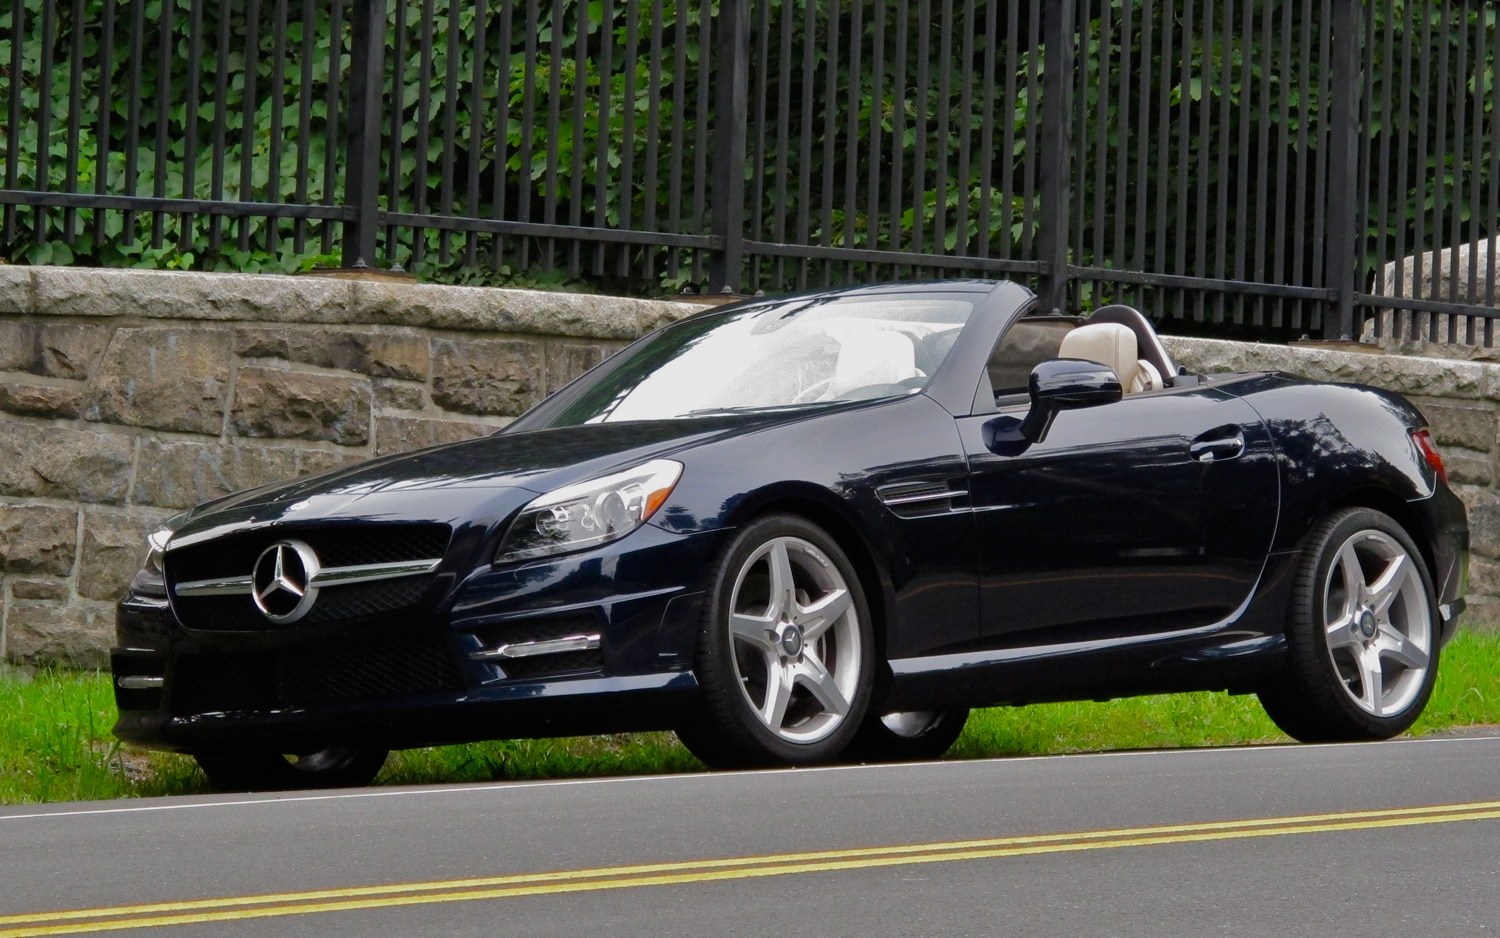 2012 Mercedes Benz SLK350 Front Left Side View2